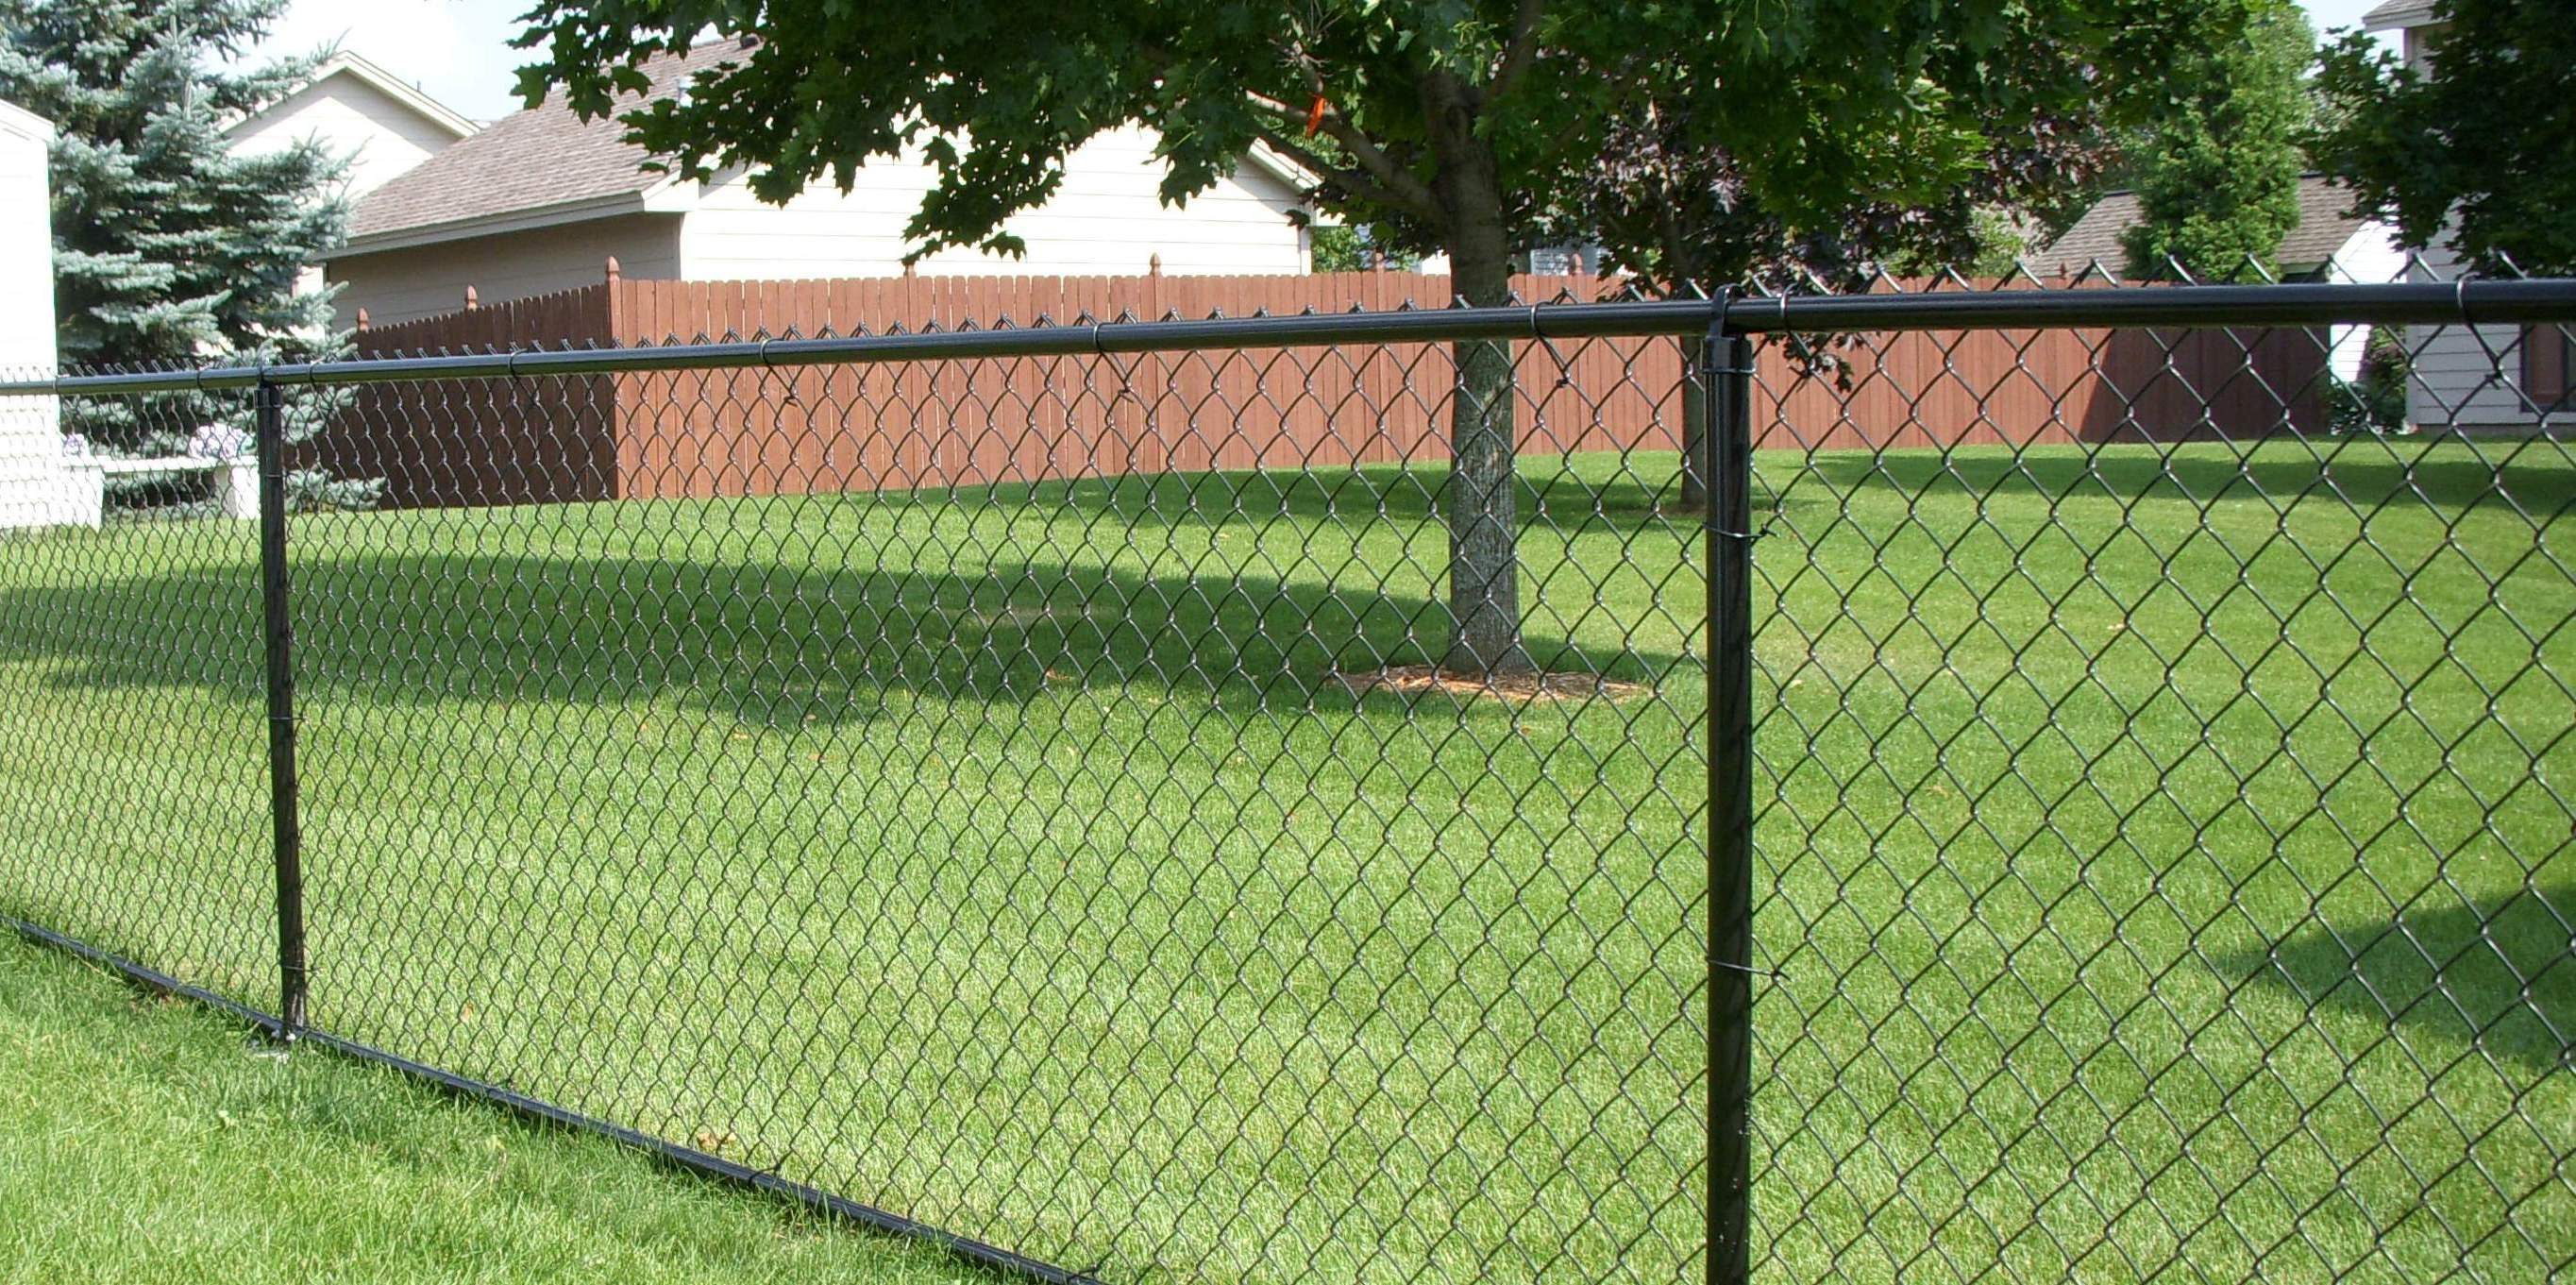 Residential Black Vinyl Chain Link Installation Fence Okc inside sizing 2729 X 1361